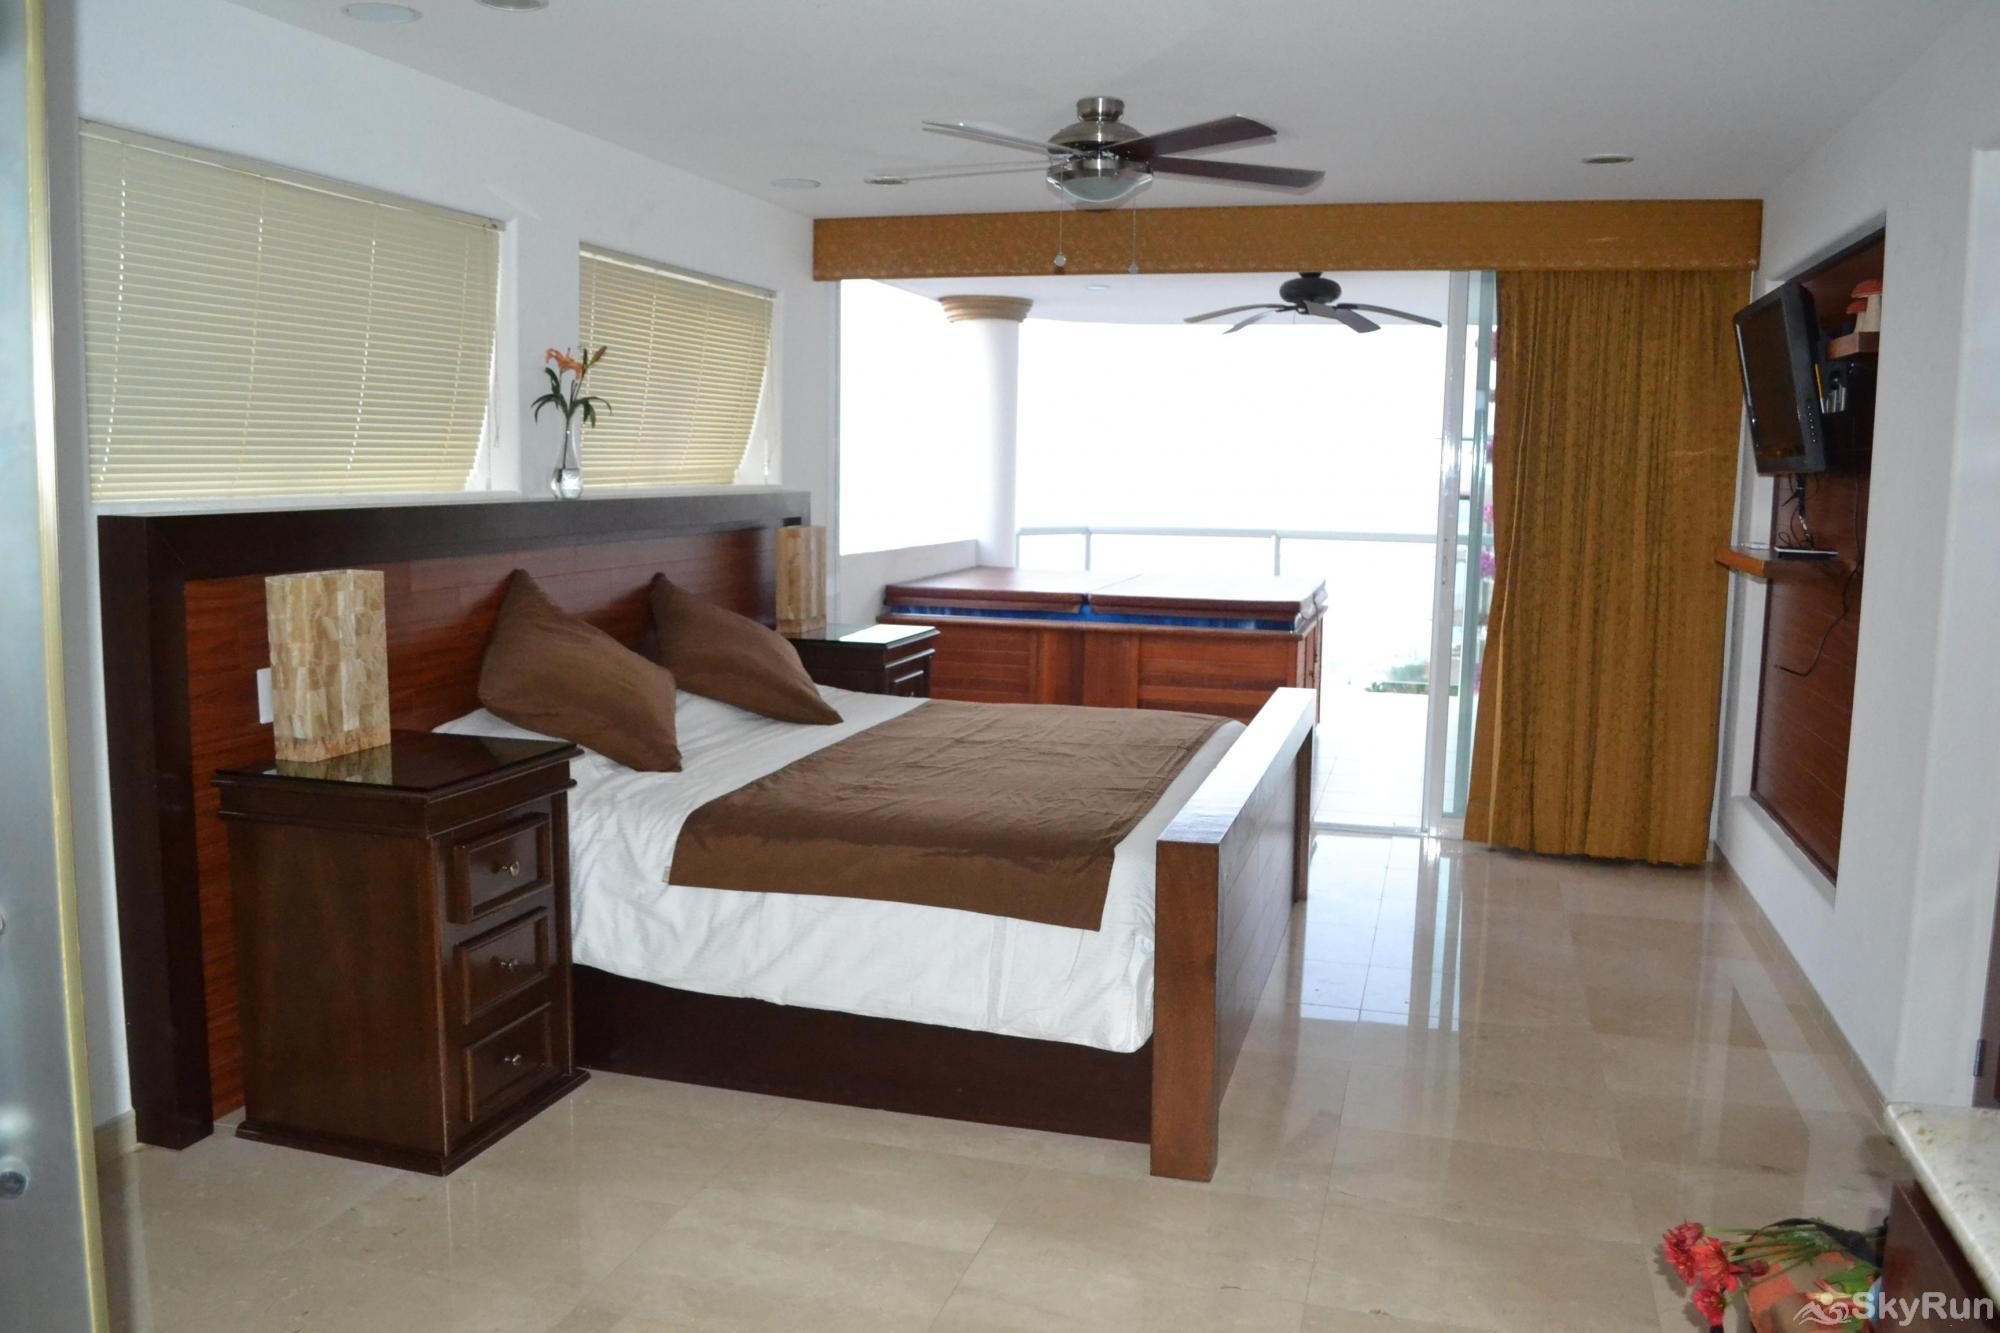 Spectacular Ocean View 1br with Outdoor Pool, balcony!  PV at it's finest Master Bedroom